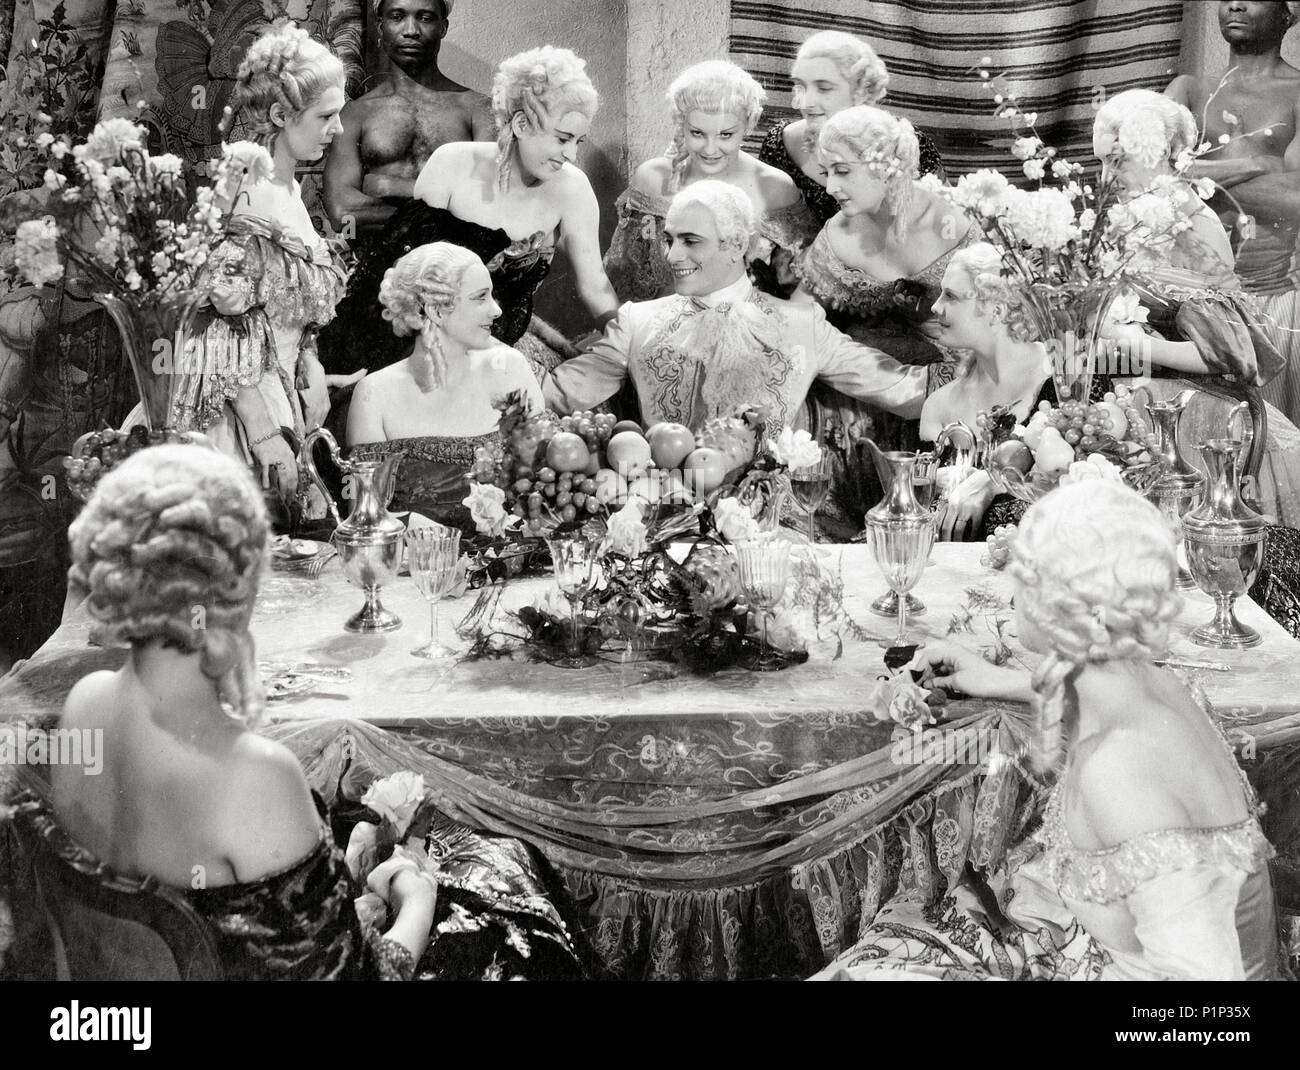 Original Film Title: LES AVENTURES DE CASANOVA.  English Title: LOVES OF CASANOVA.  Film Director: JEAN BOYER.  Year: 1947.  Stars: GIACOMO CASANOVA. Credit: SIRIUS / Album - Stock Image